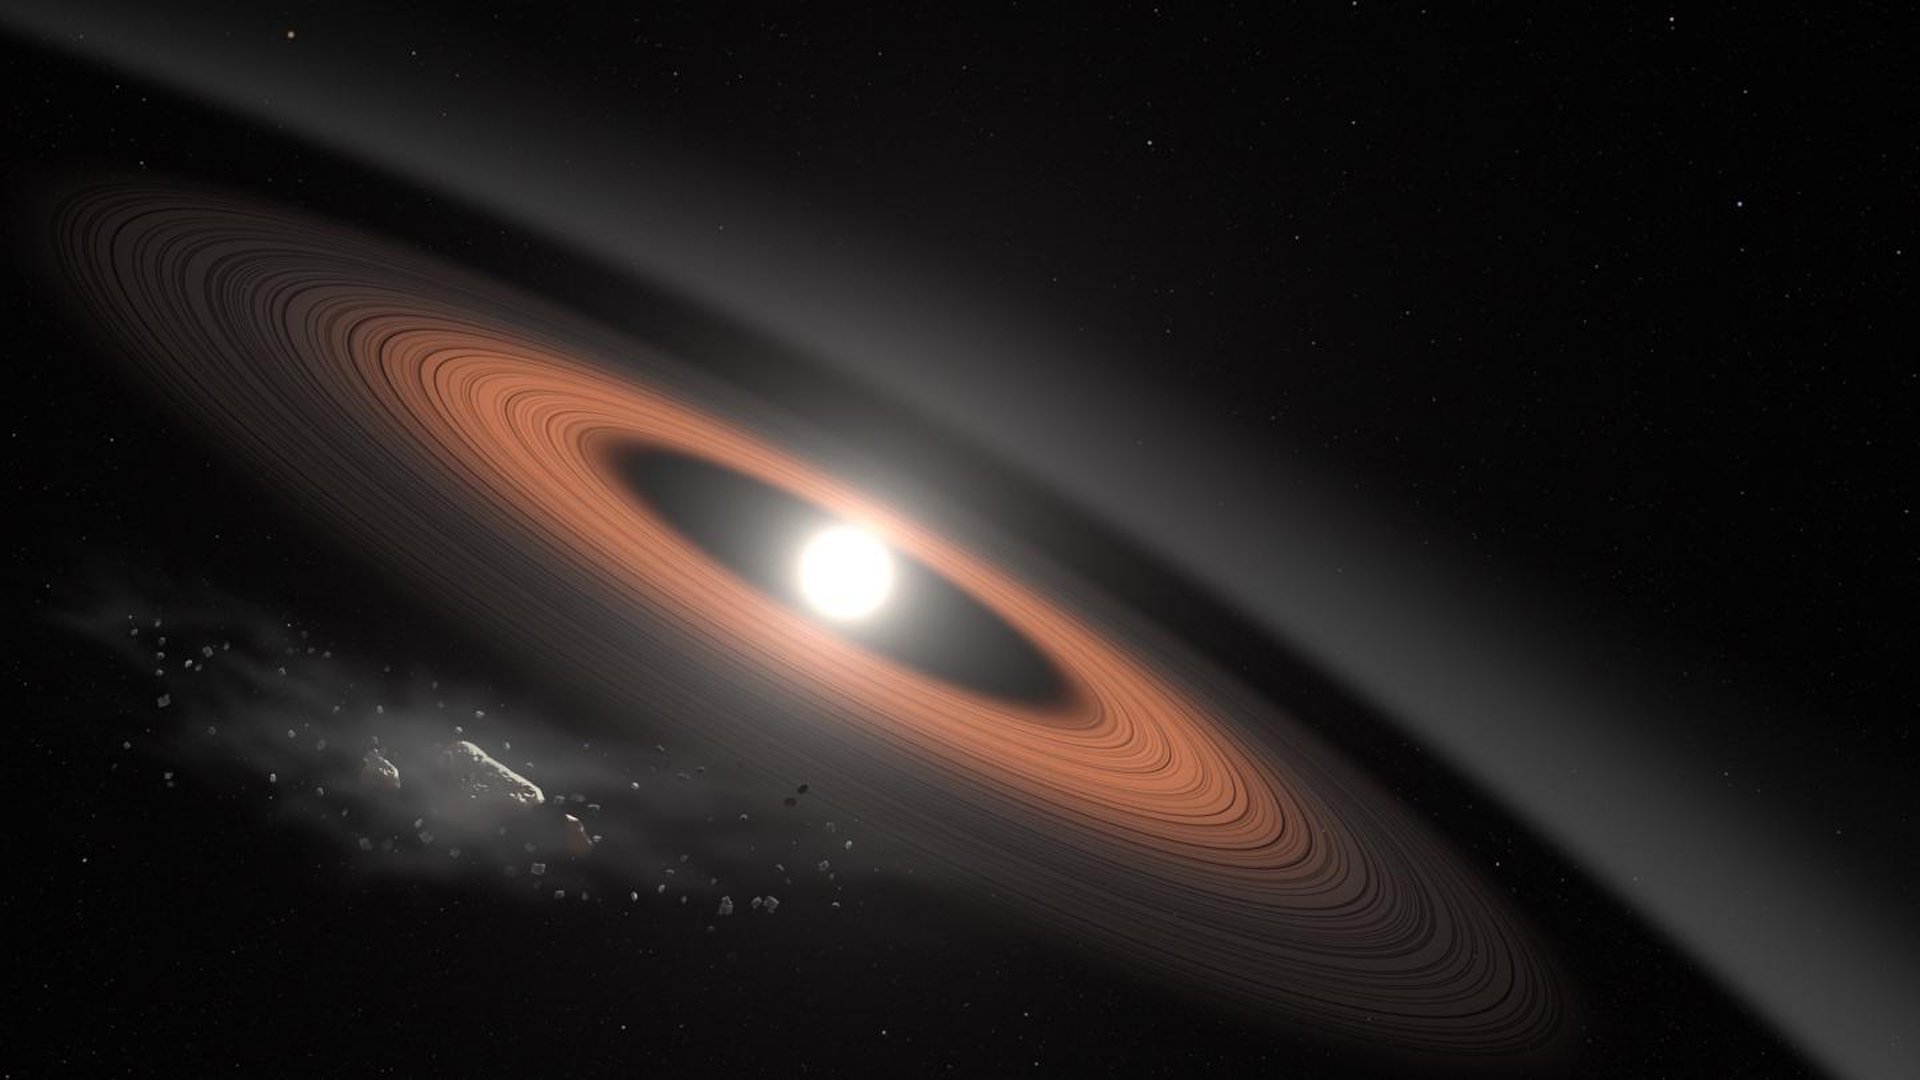 Searching for Planet Nine, scientist finds ancient star with mysterious rings